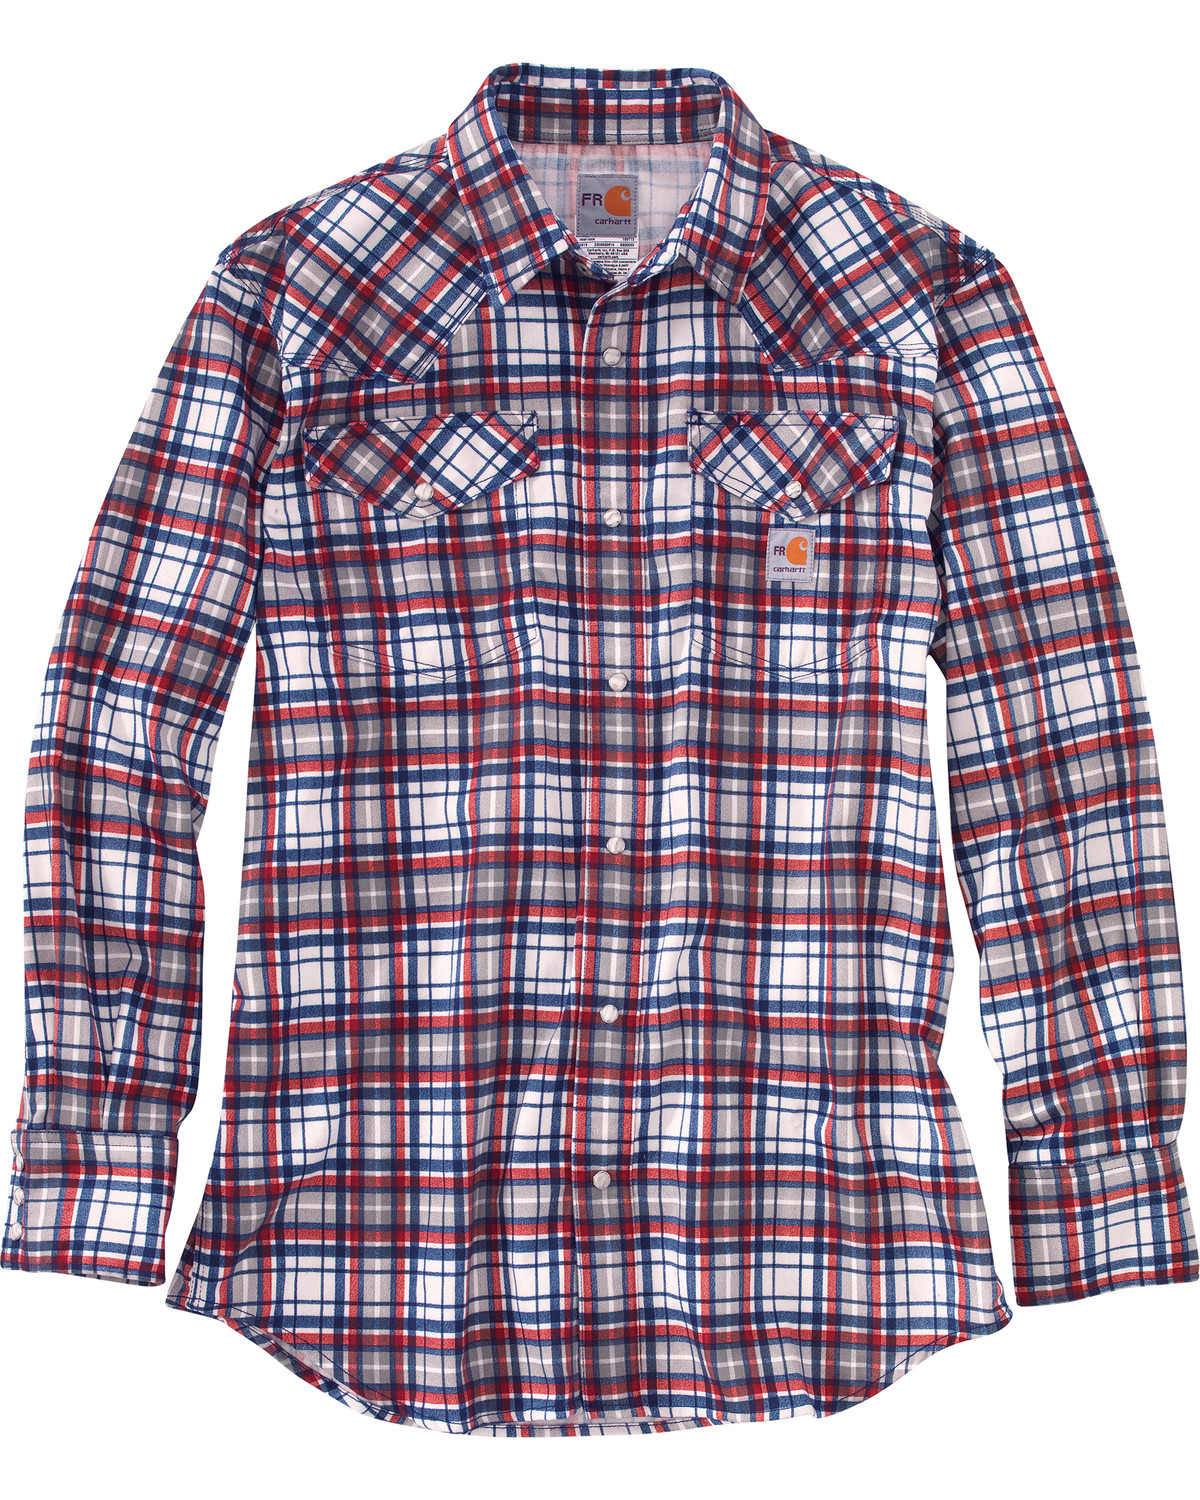 9a052c76ecec Carhartt Men s Red Flame-Resistant Snap-Front Plaid Shirt - Tall ...